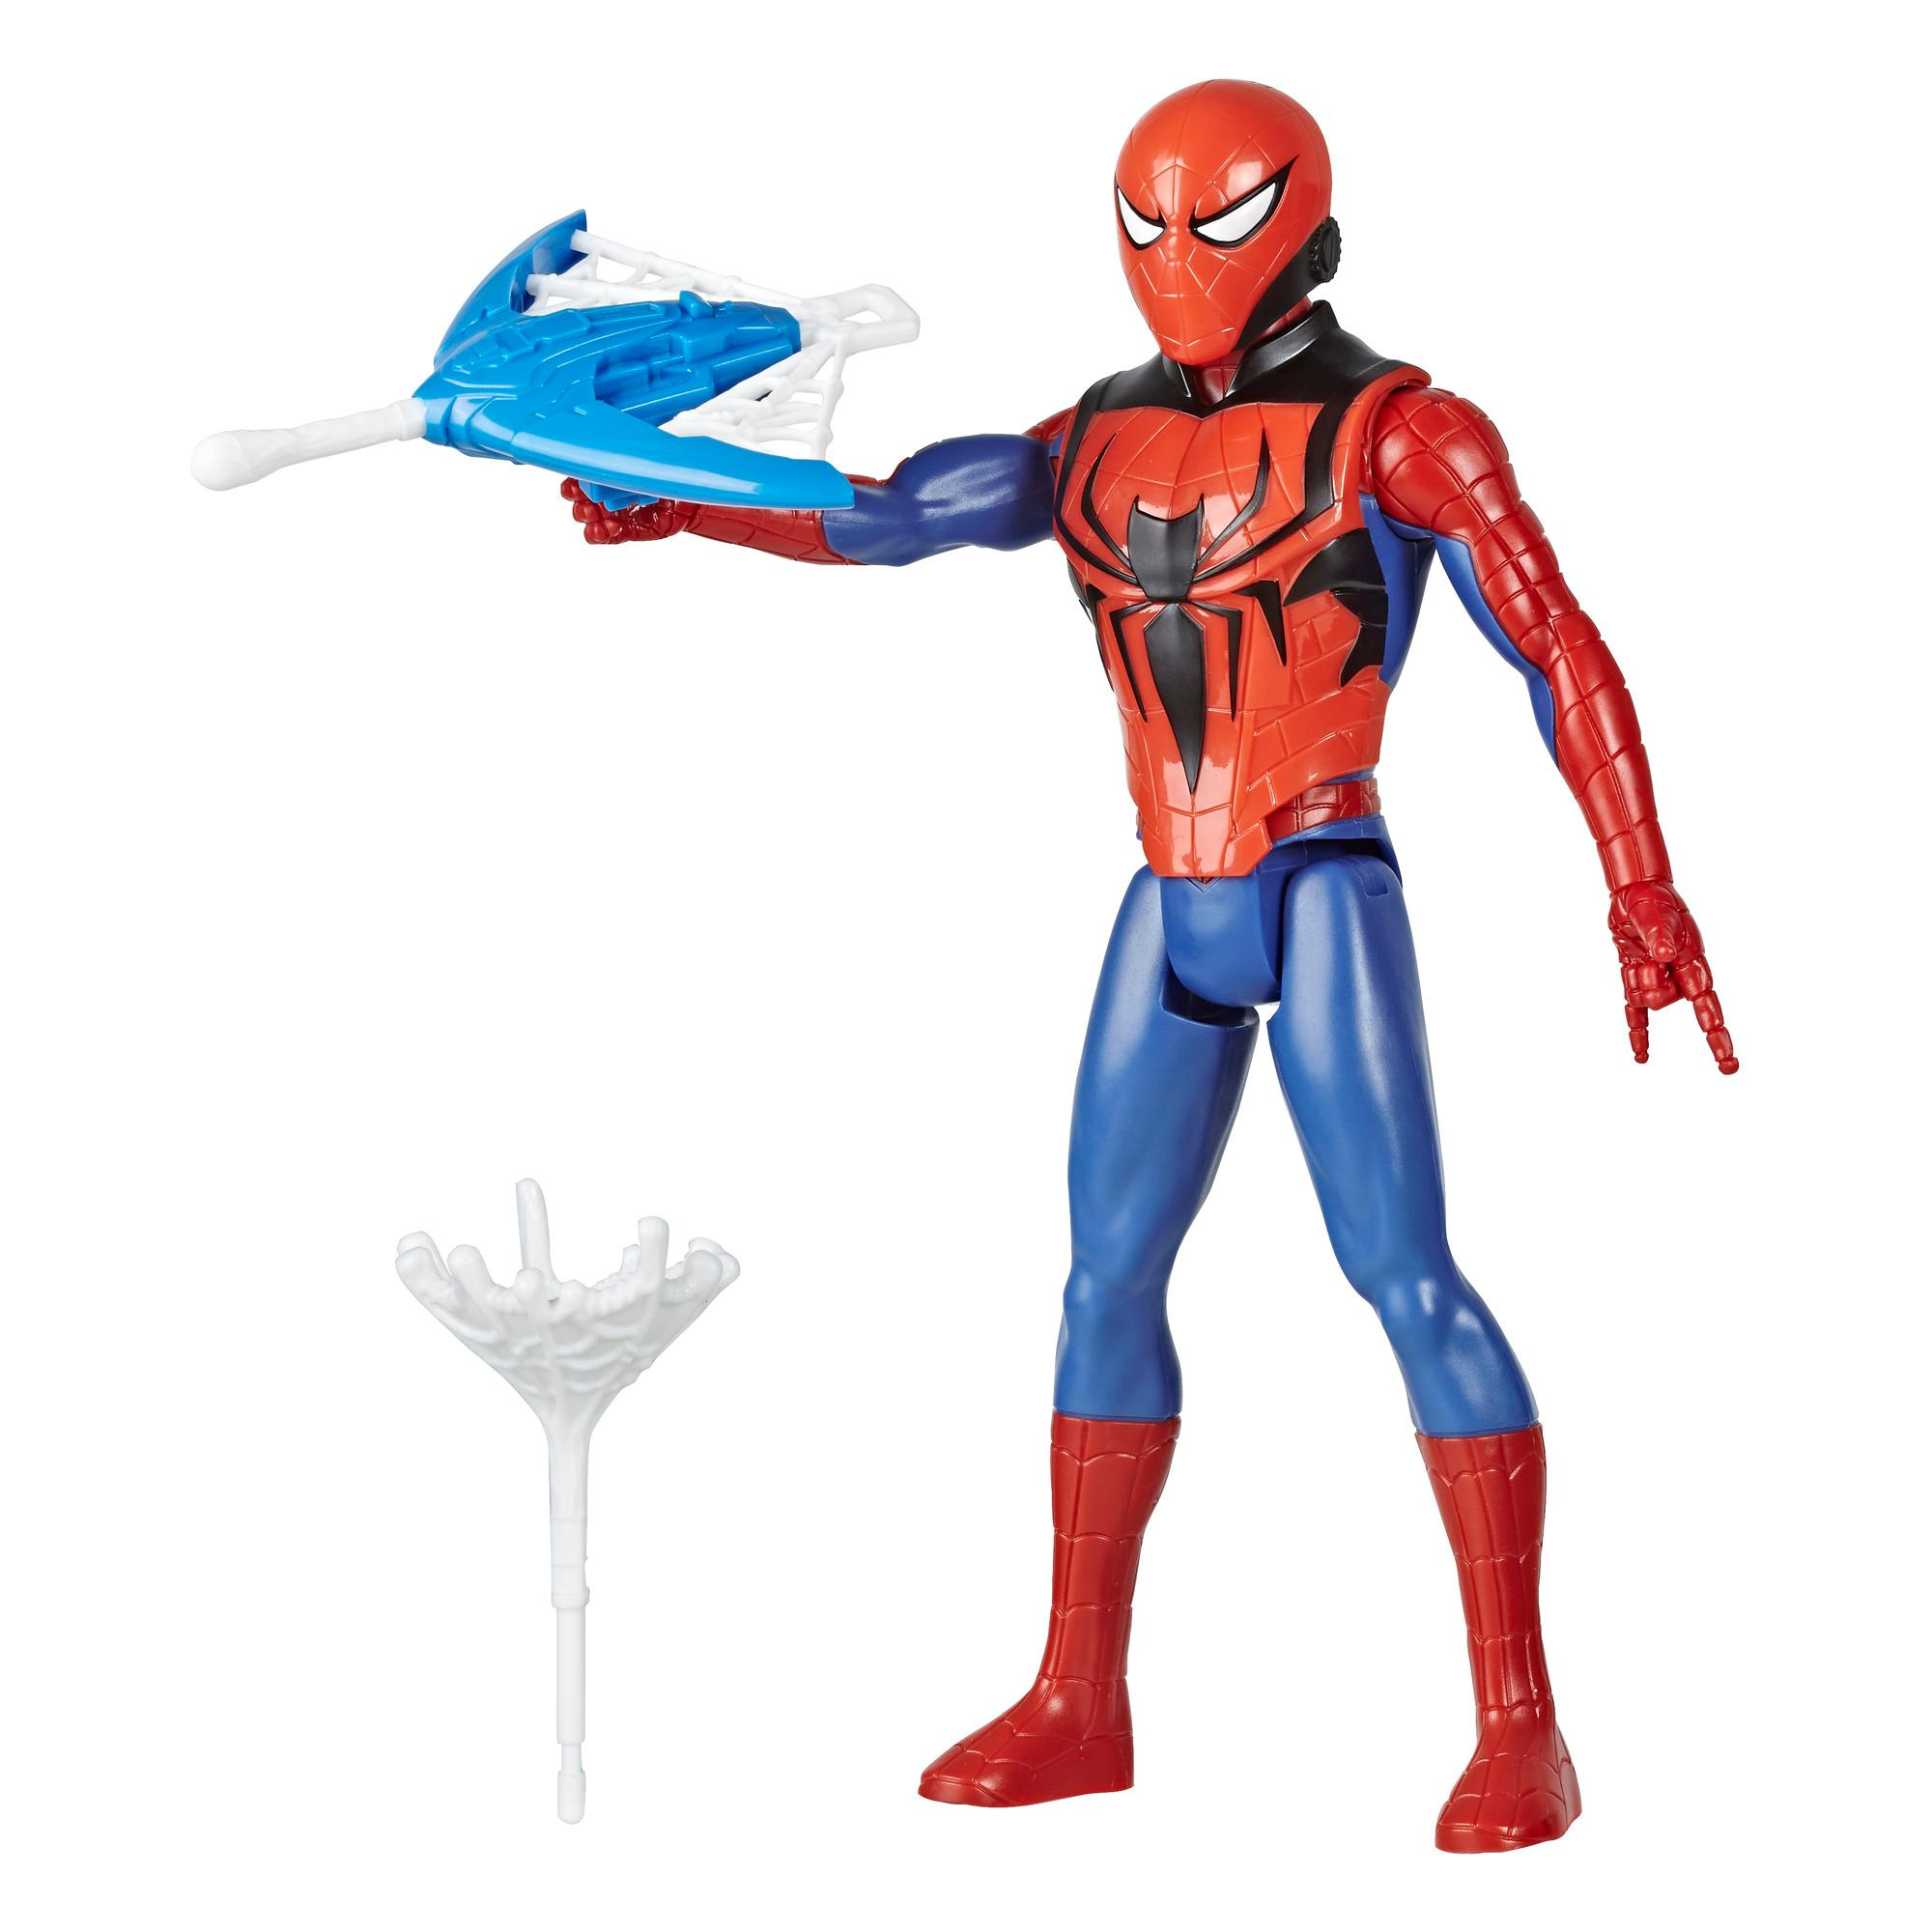 Marvel Spider-Man Titan Hero Serie Blast Gear Spider-Man